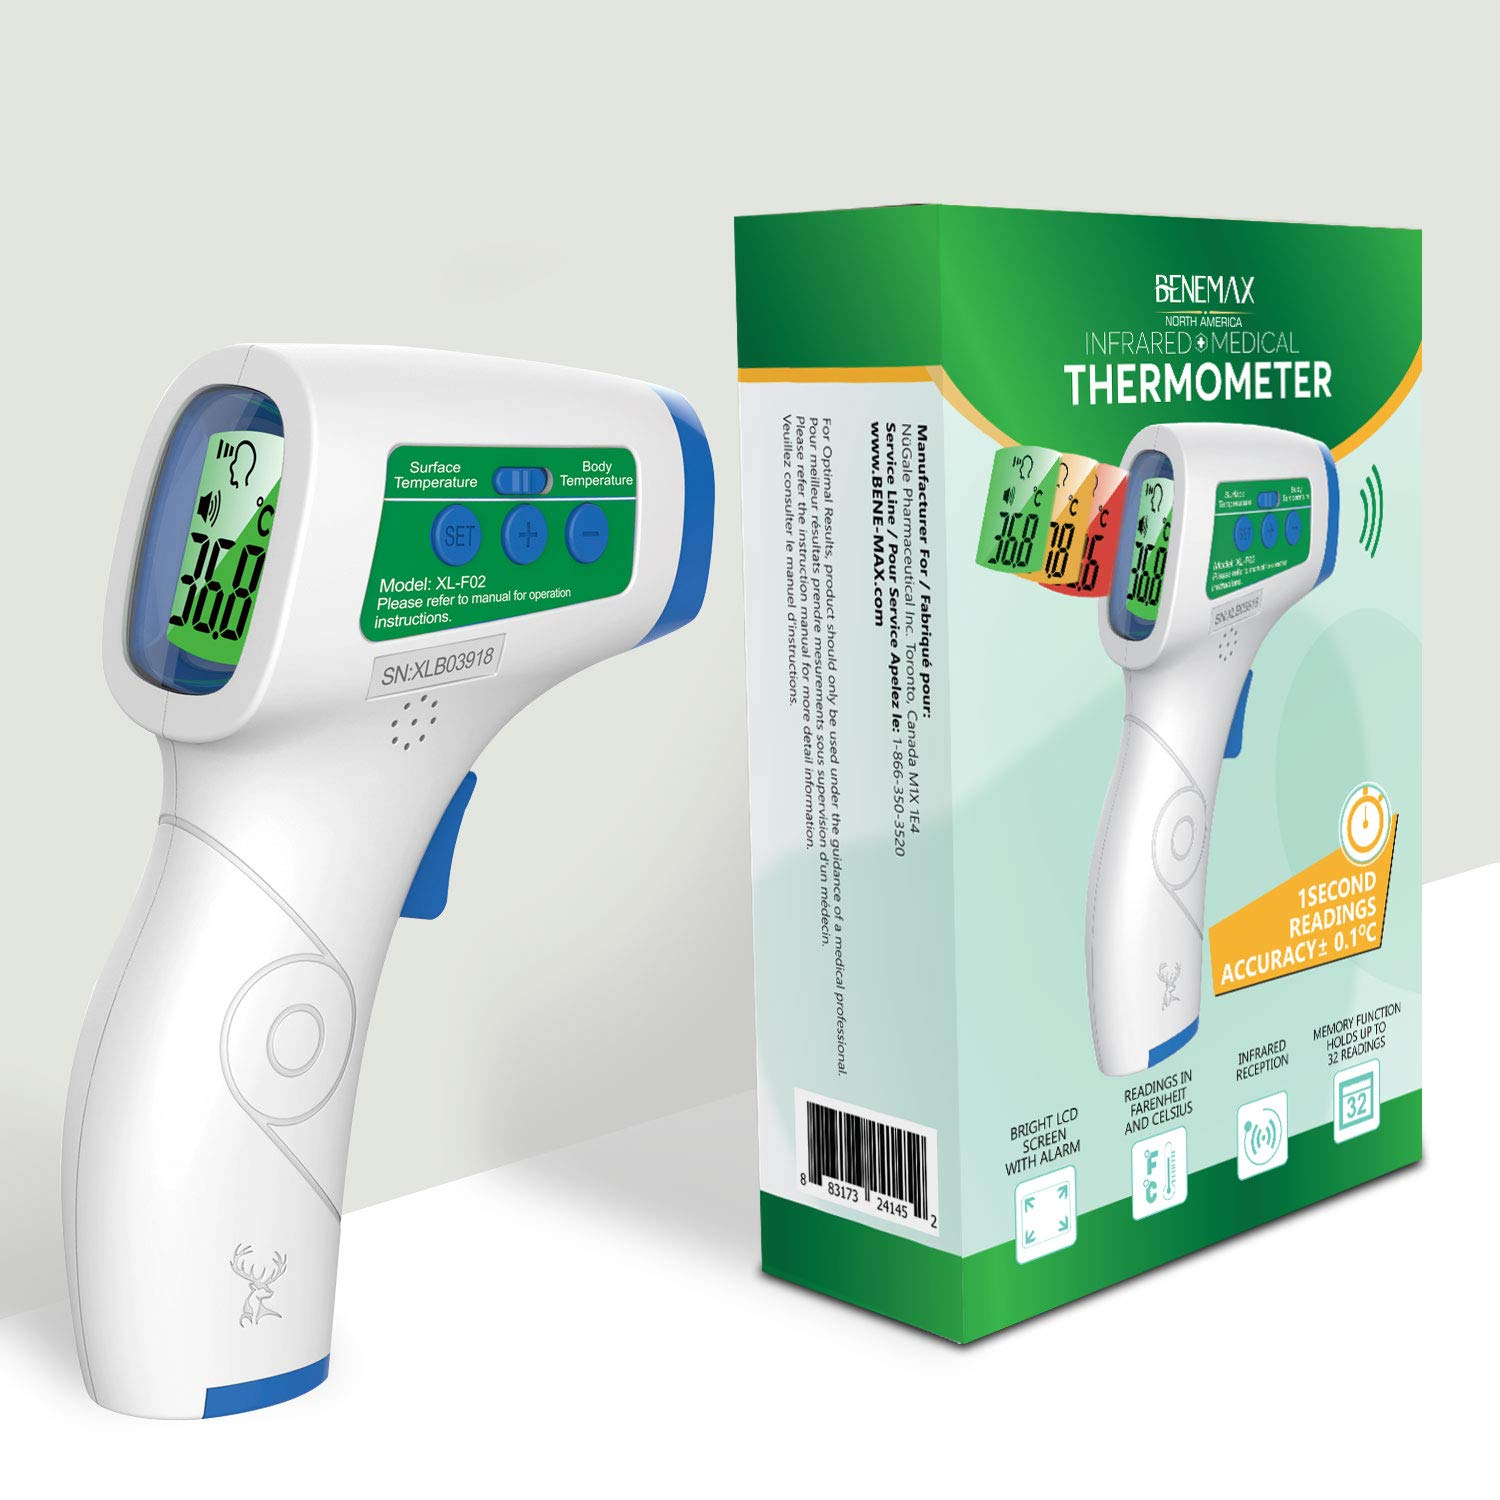 Infrared Thermometer Non-Contact Temperature Instant & Accurate Readings. LCD Display with High Pitched Alarm for Fever. Handheld. Safe for Children & Adults. 32 Memory Slots. Home and Business